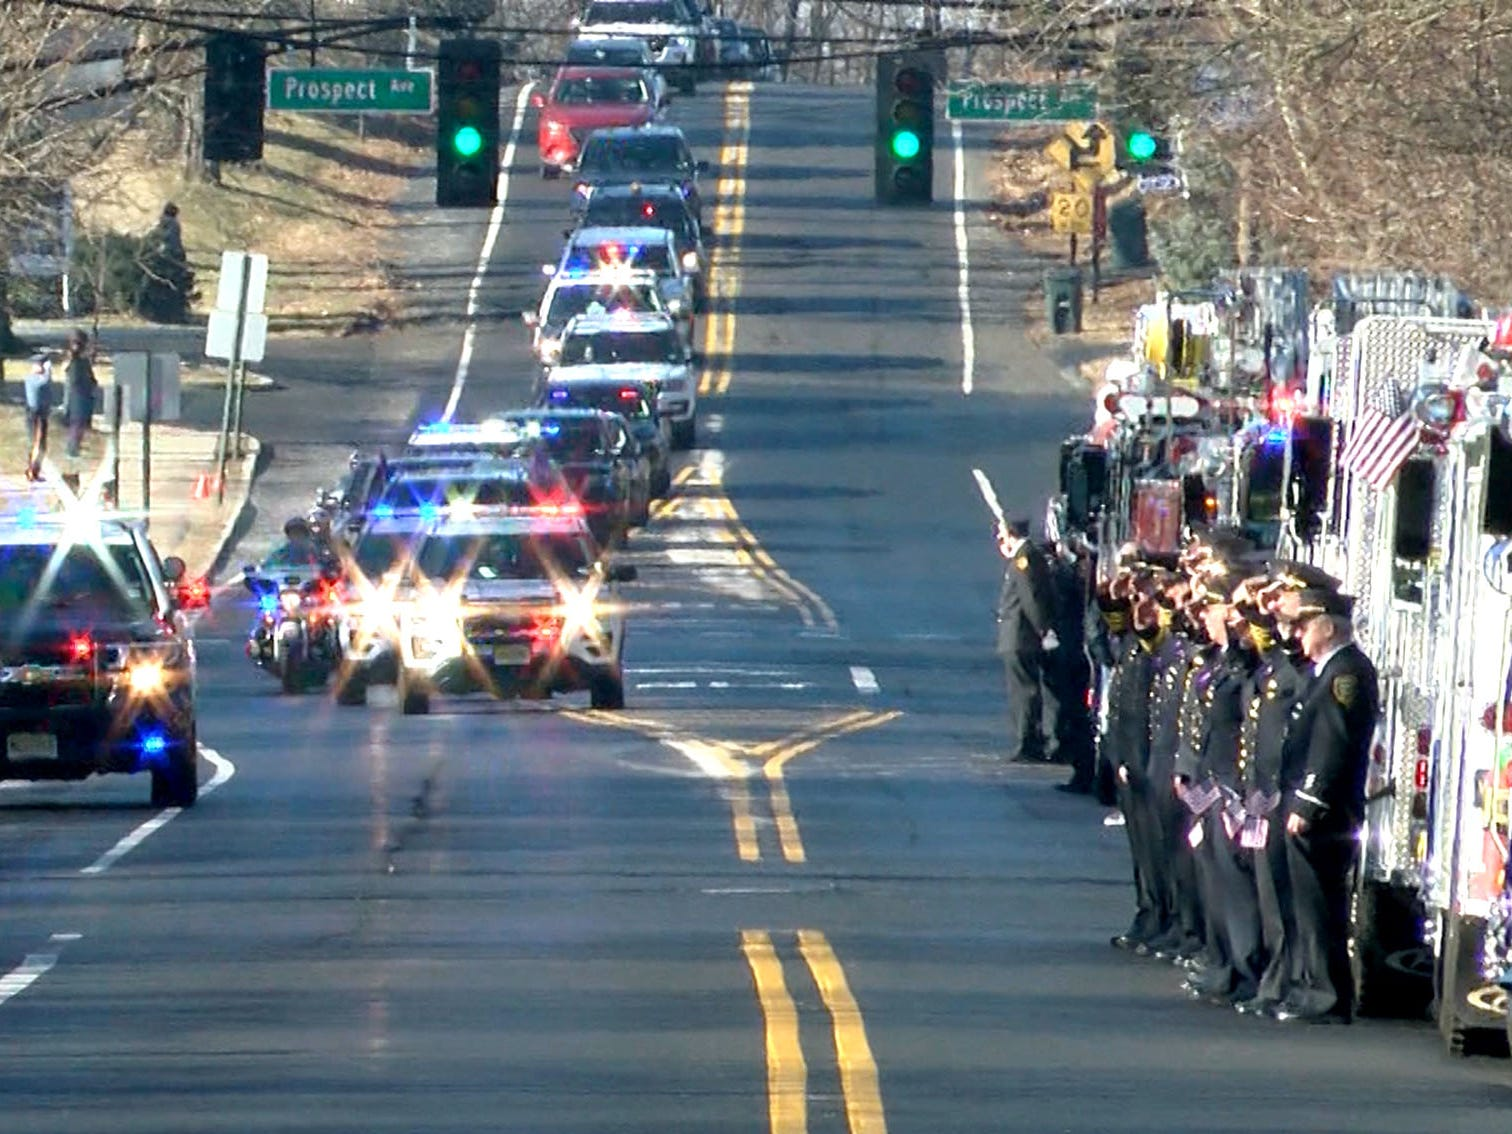 Firefighters salute as the funeral procession for Army Private First Class Jamie Riley drives along Harding Road in Fair Haven Monday morning, February 4, 2019.   Riley, who is from the town, died along with another soldier in a crash between two Stryker vehicles at McGregor Range in New Mexico.